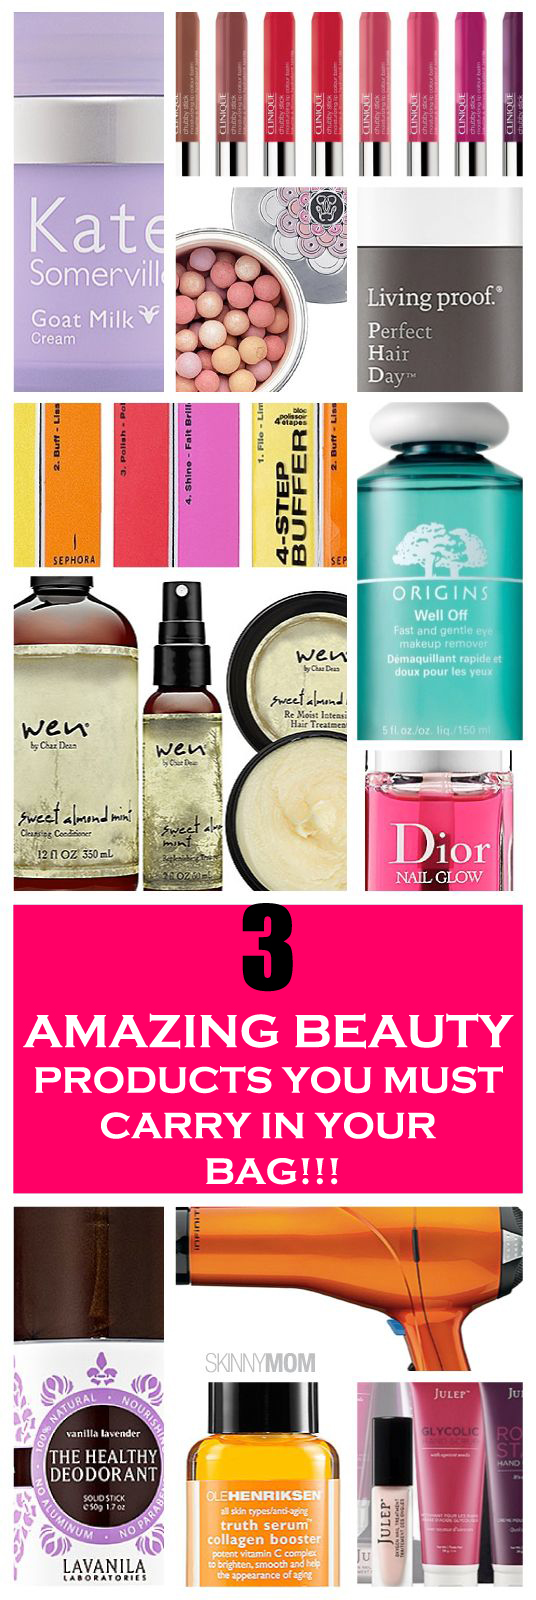 3 most Amazing beauty products you must have in your bag